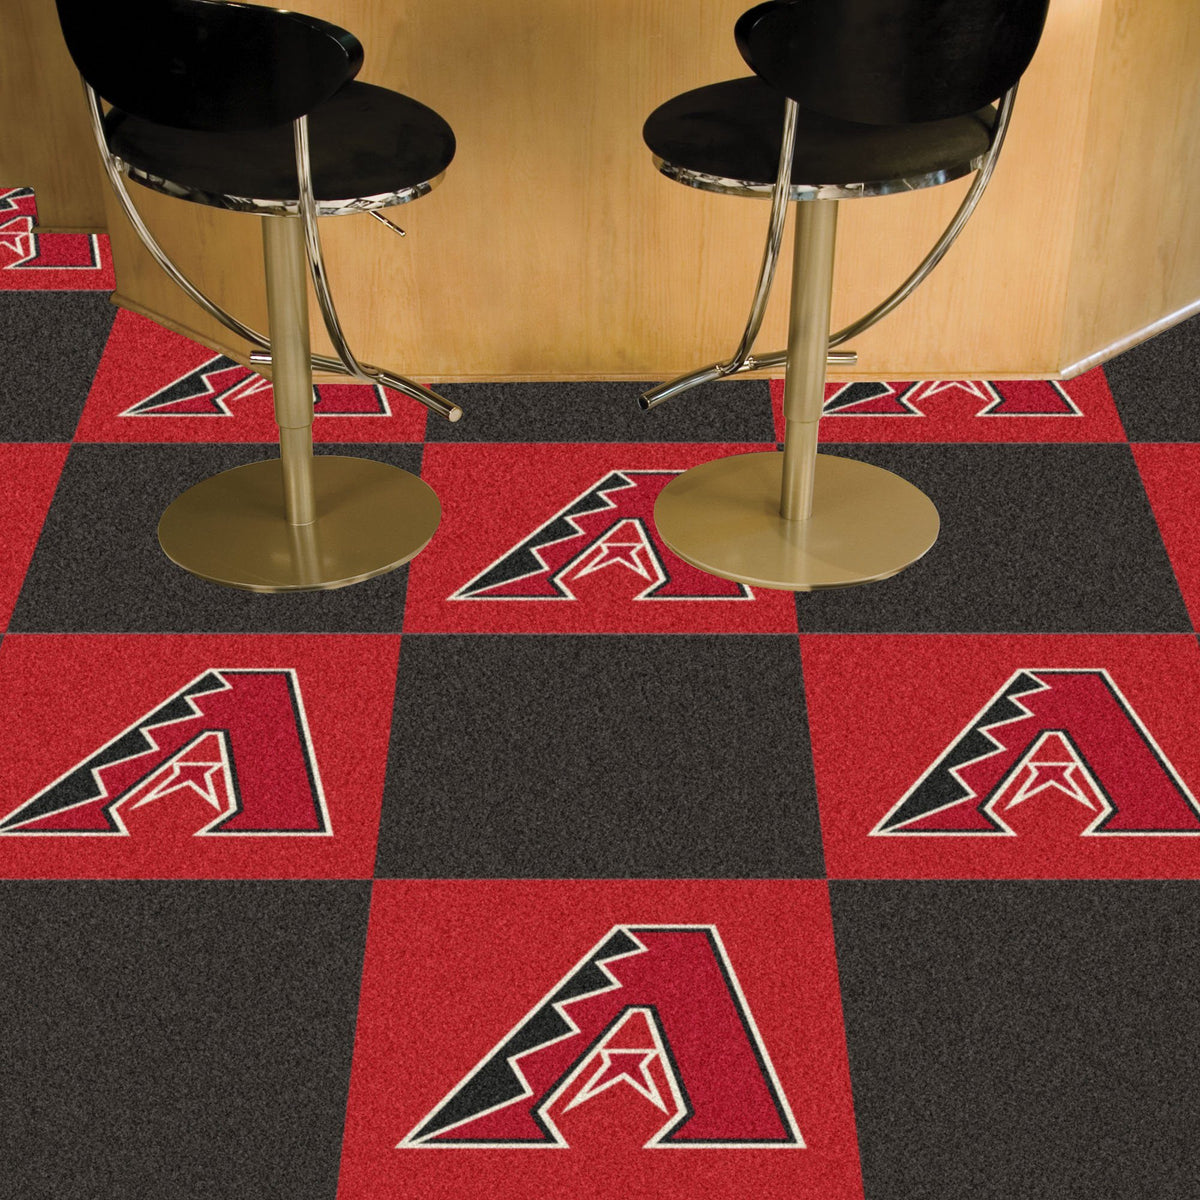 MLB - Team Carpet Tiles MLB Mats, Carpet Tile Flooring, Team Carpet Tiles, MLB, Home Fan Mats Arizona Diamondbacks